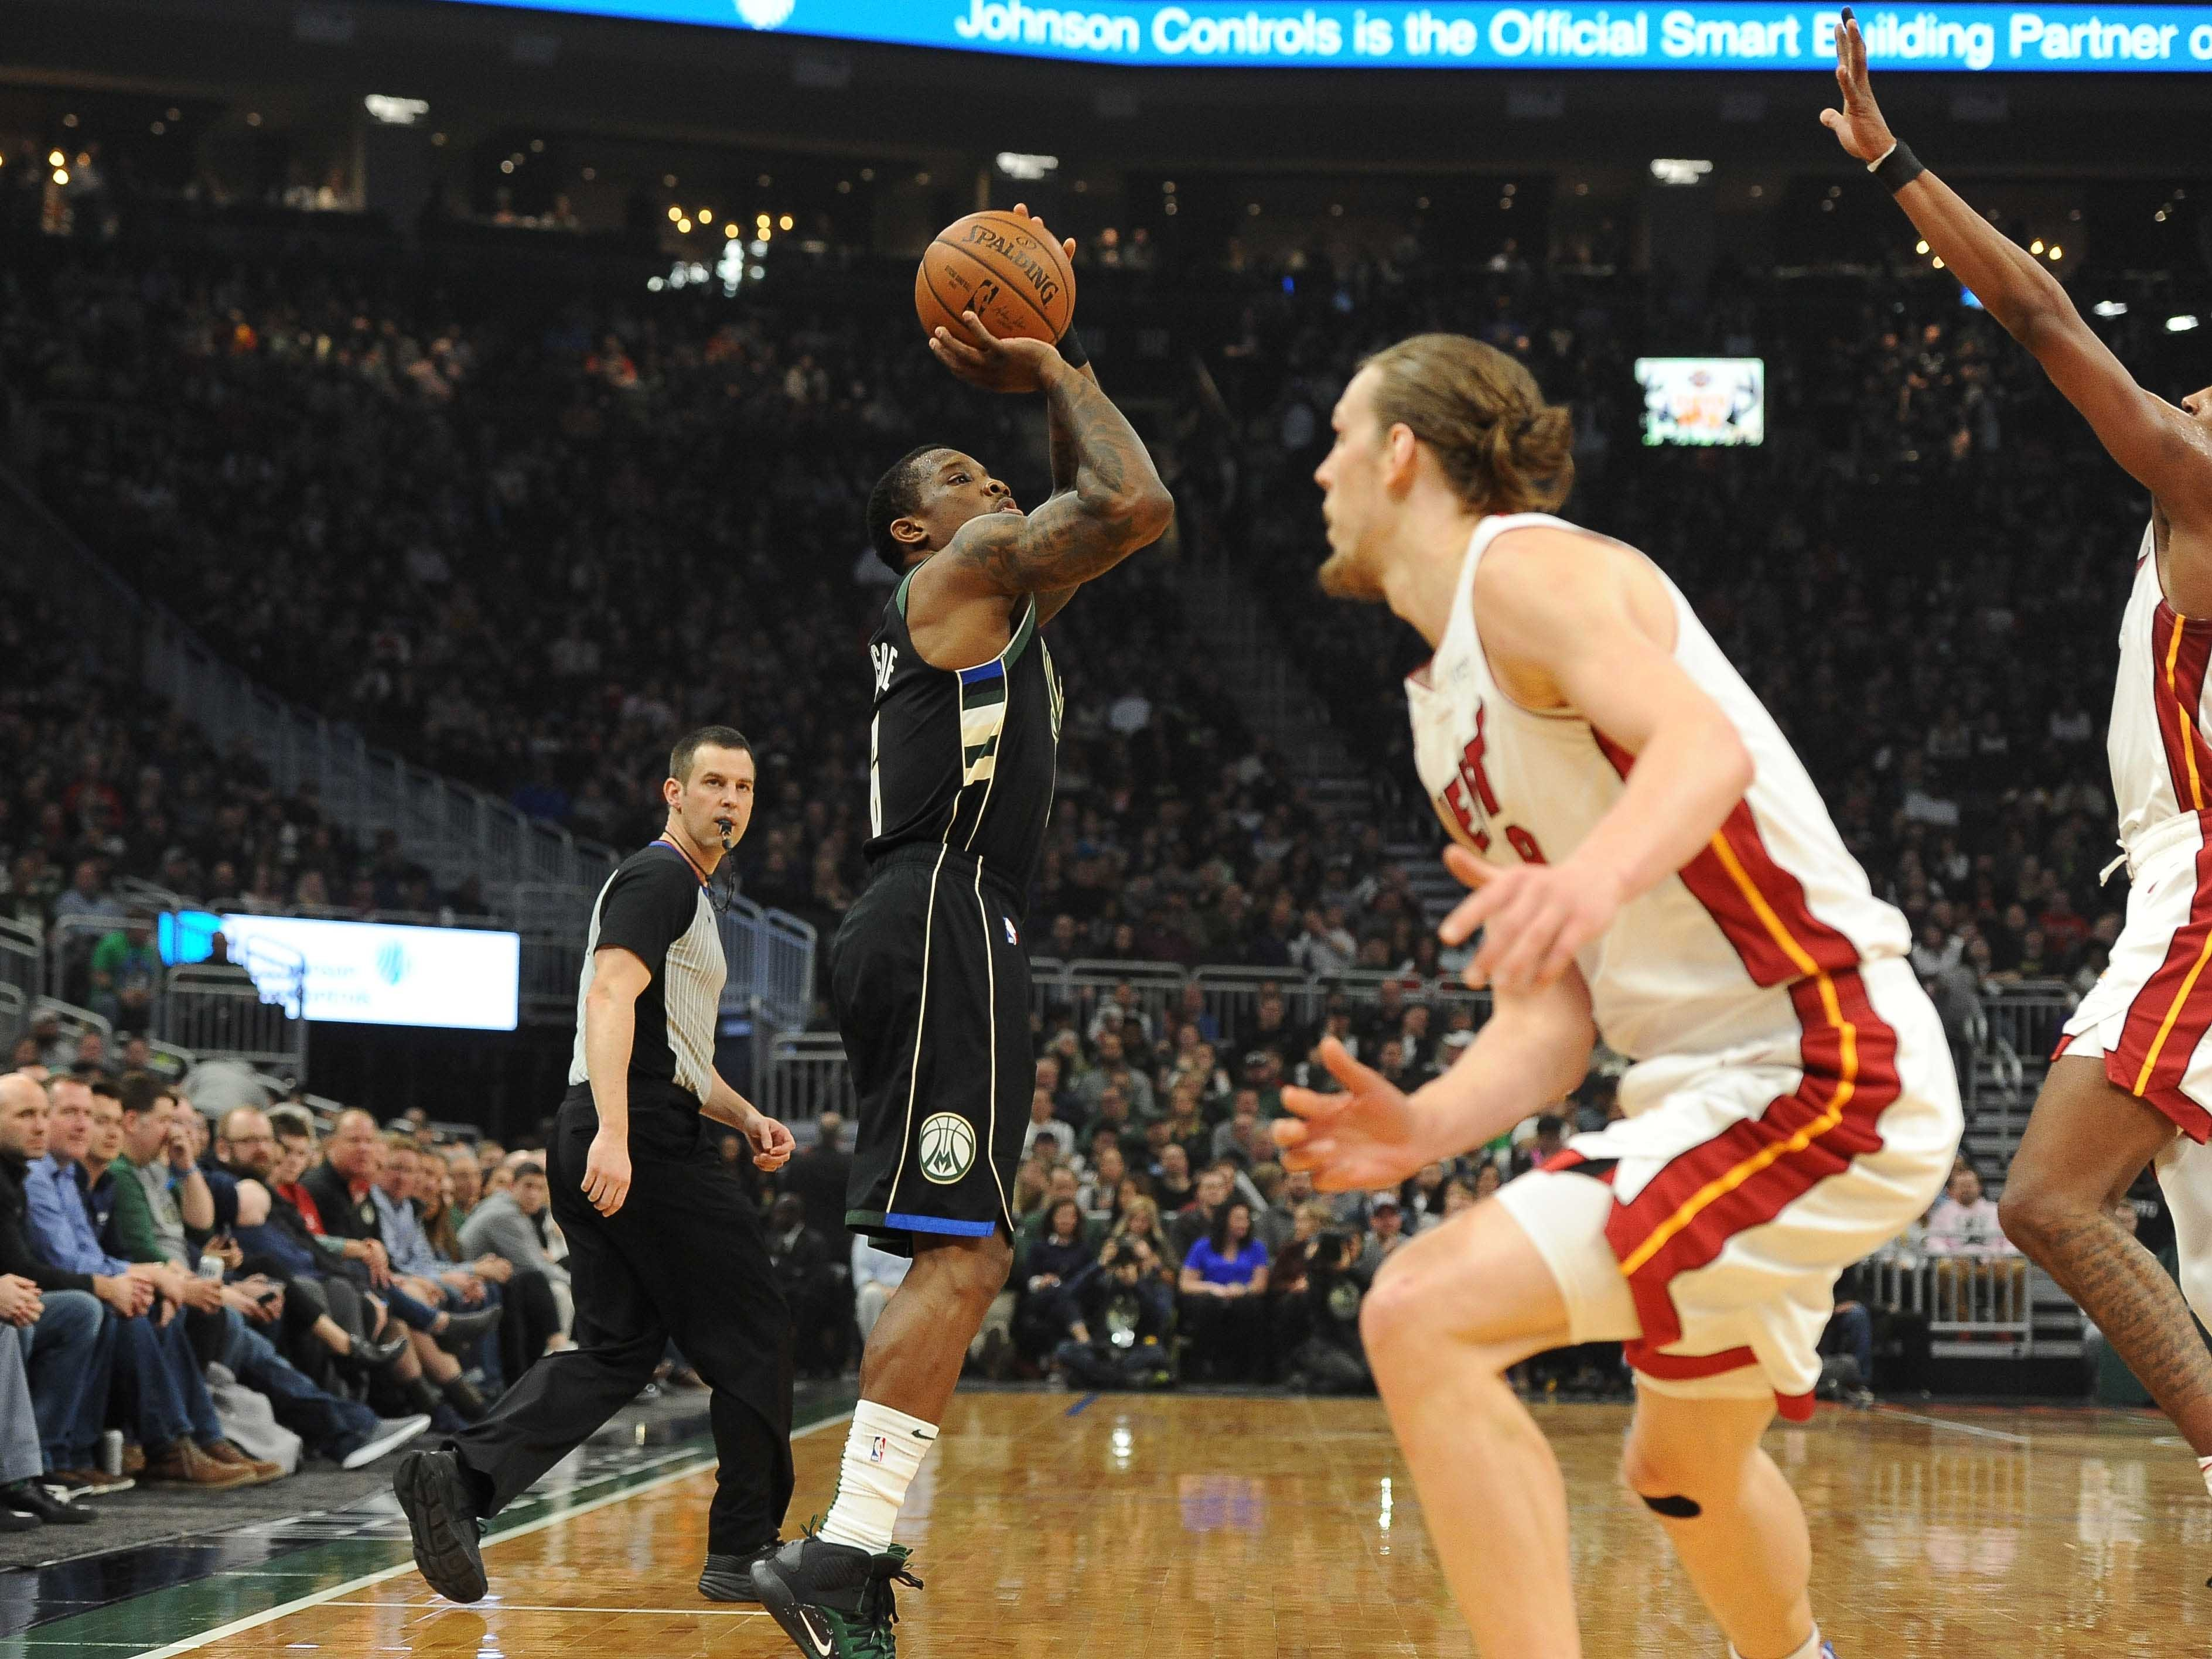 Eric Bledsoe of the Bucks launches a three-pointer against the Heat during the first quarter.